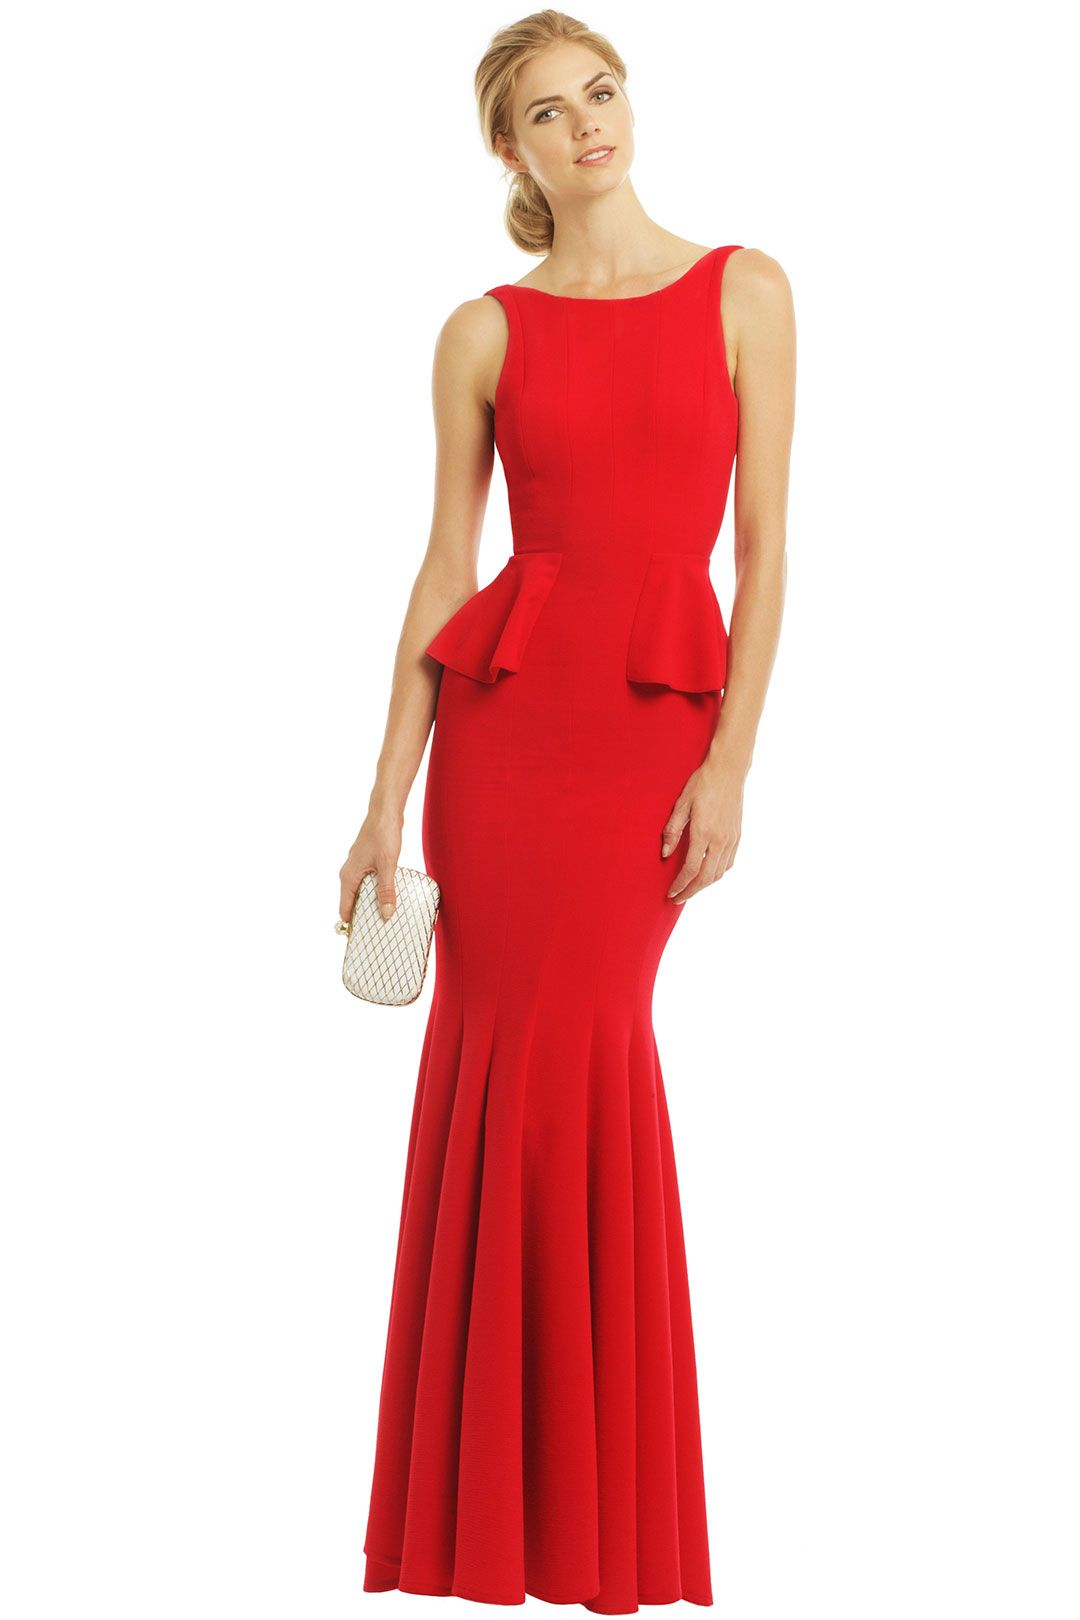 Flutter And Flirt Gown By Bcbgmaxazria At 115 Rent The Runway